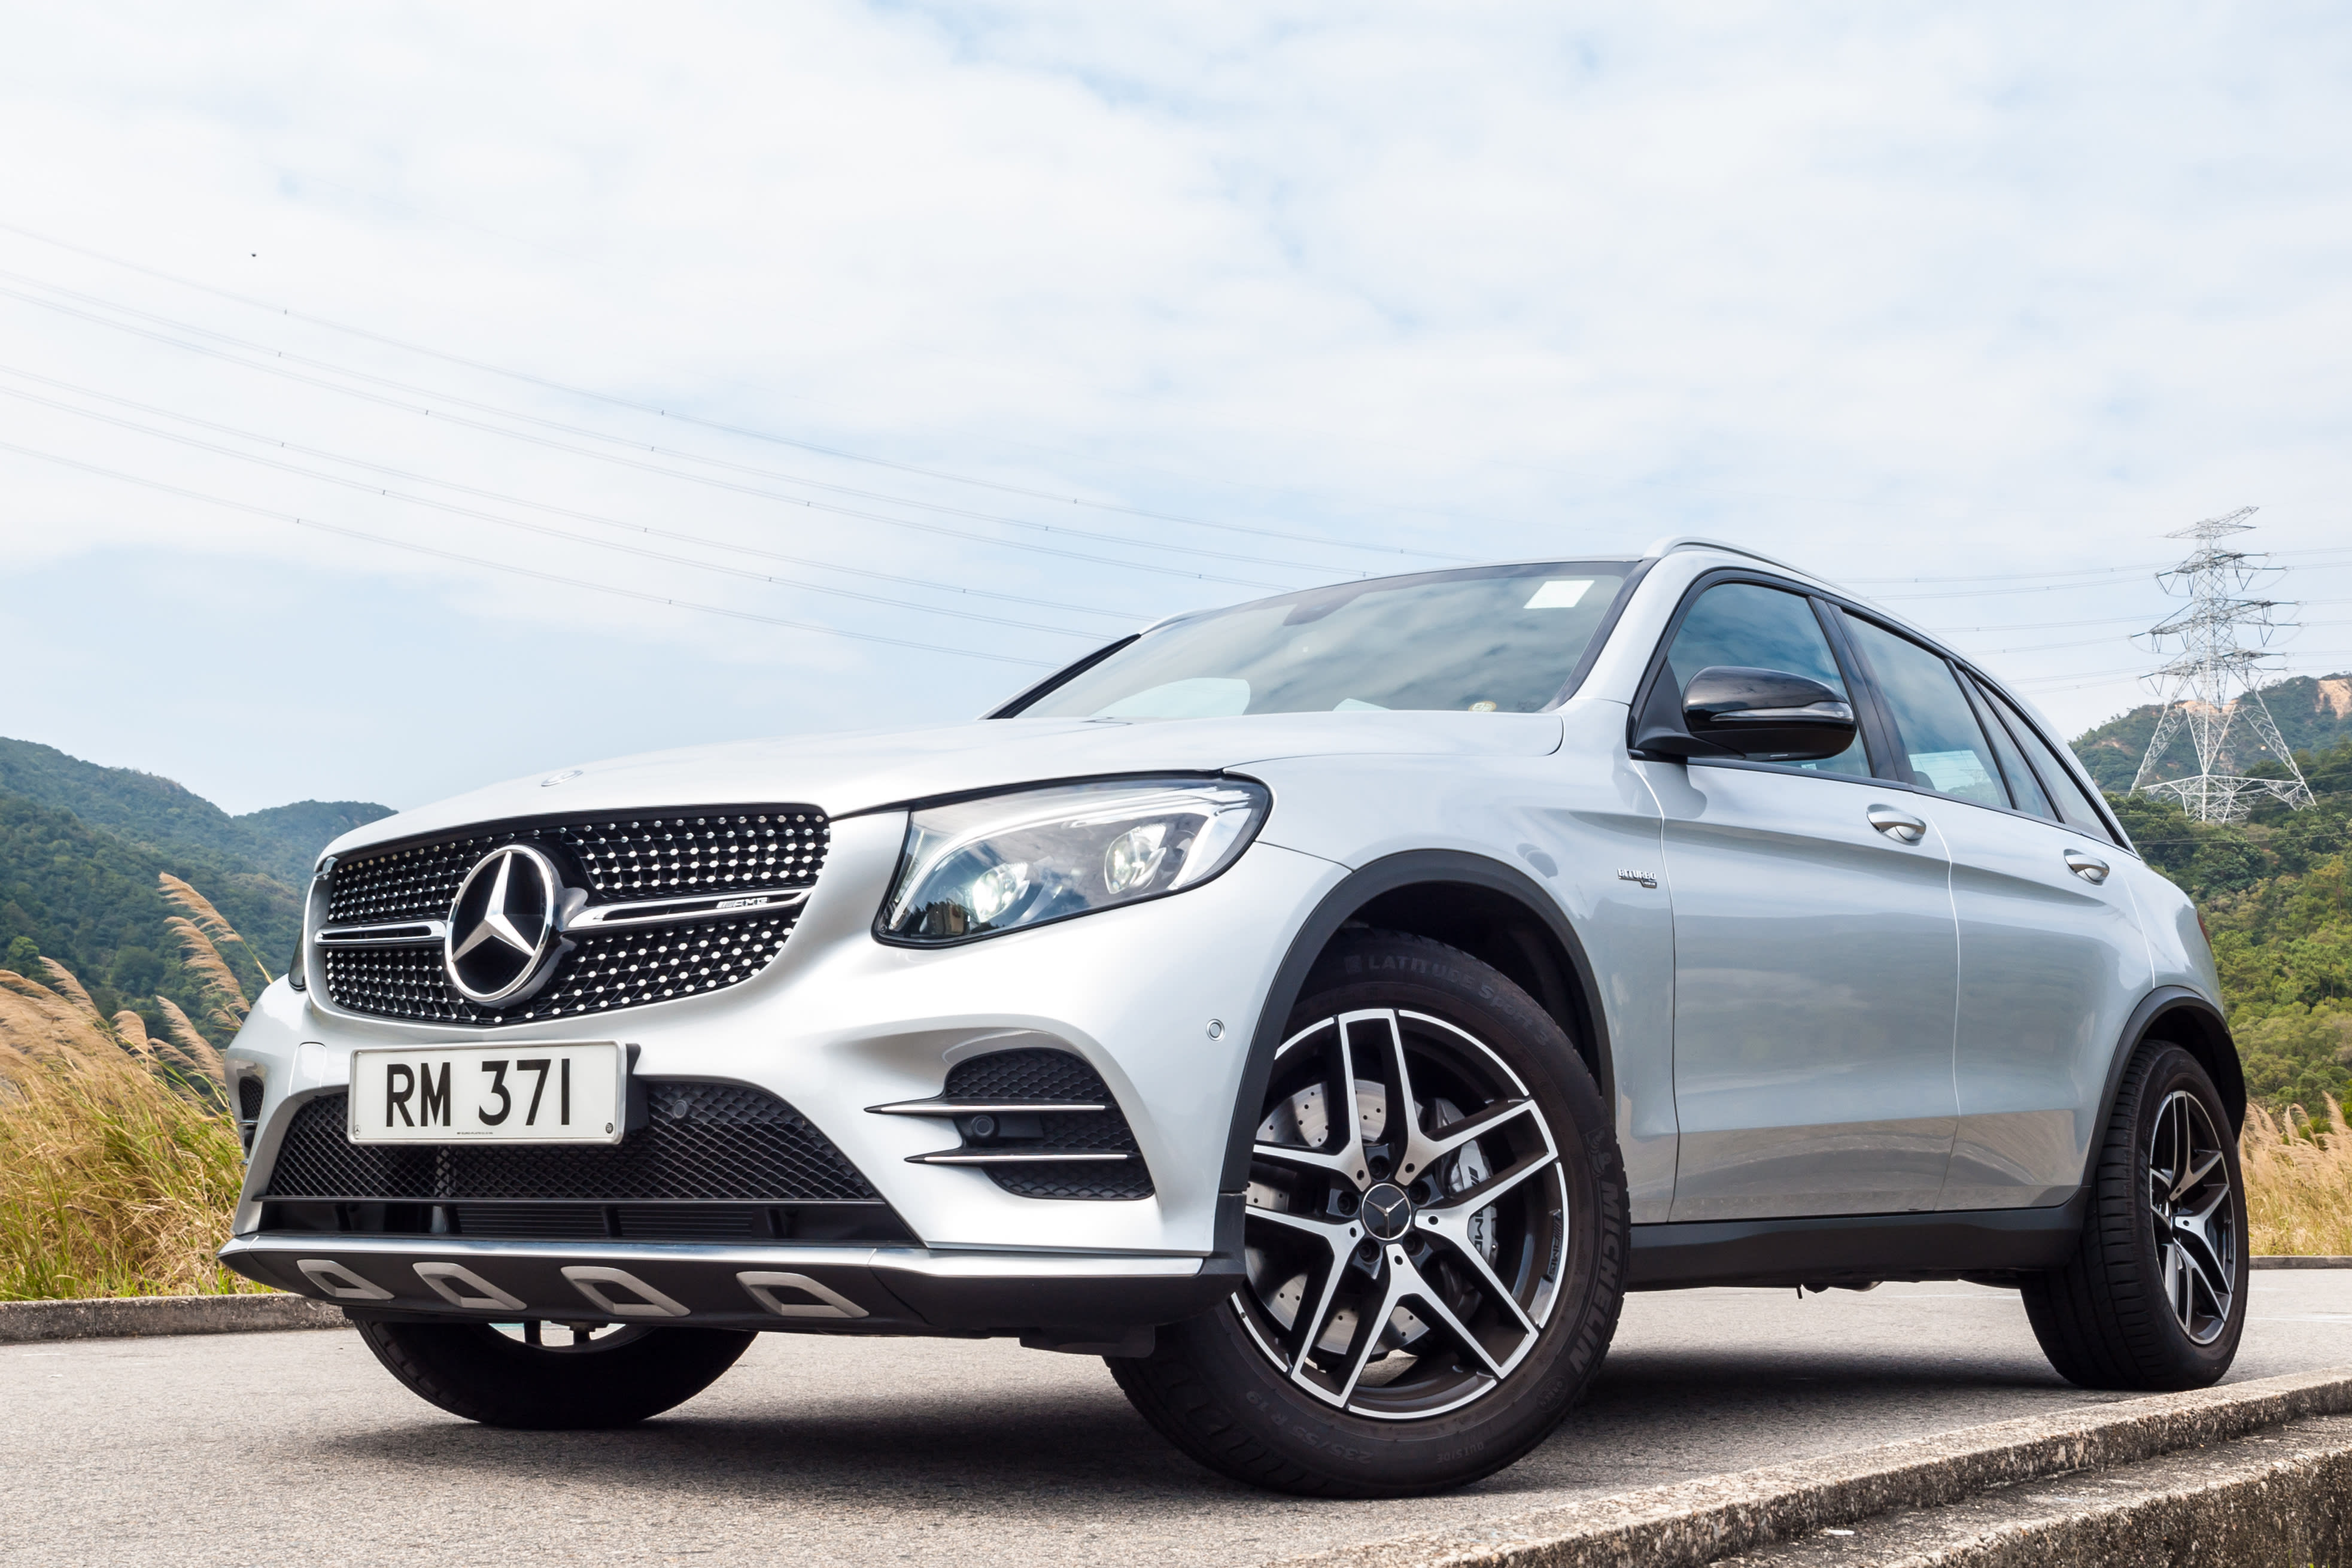 2017 White Mercedes Benz AMG GLC 43 Luxury SUV Equipped with Luxury Tires